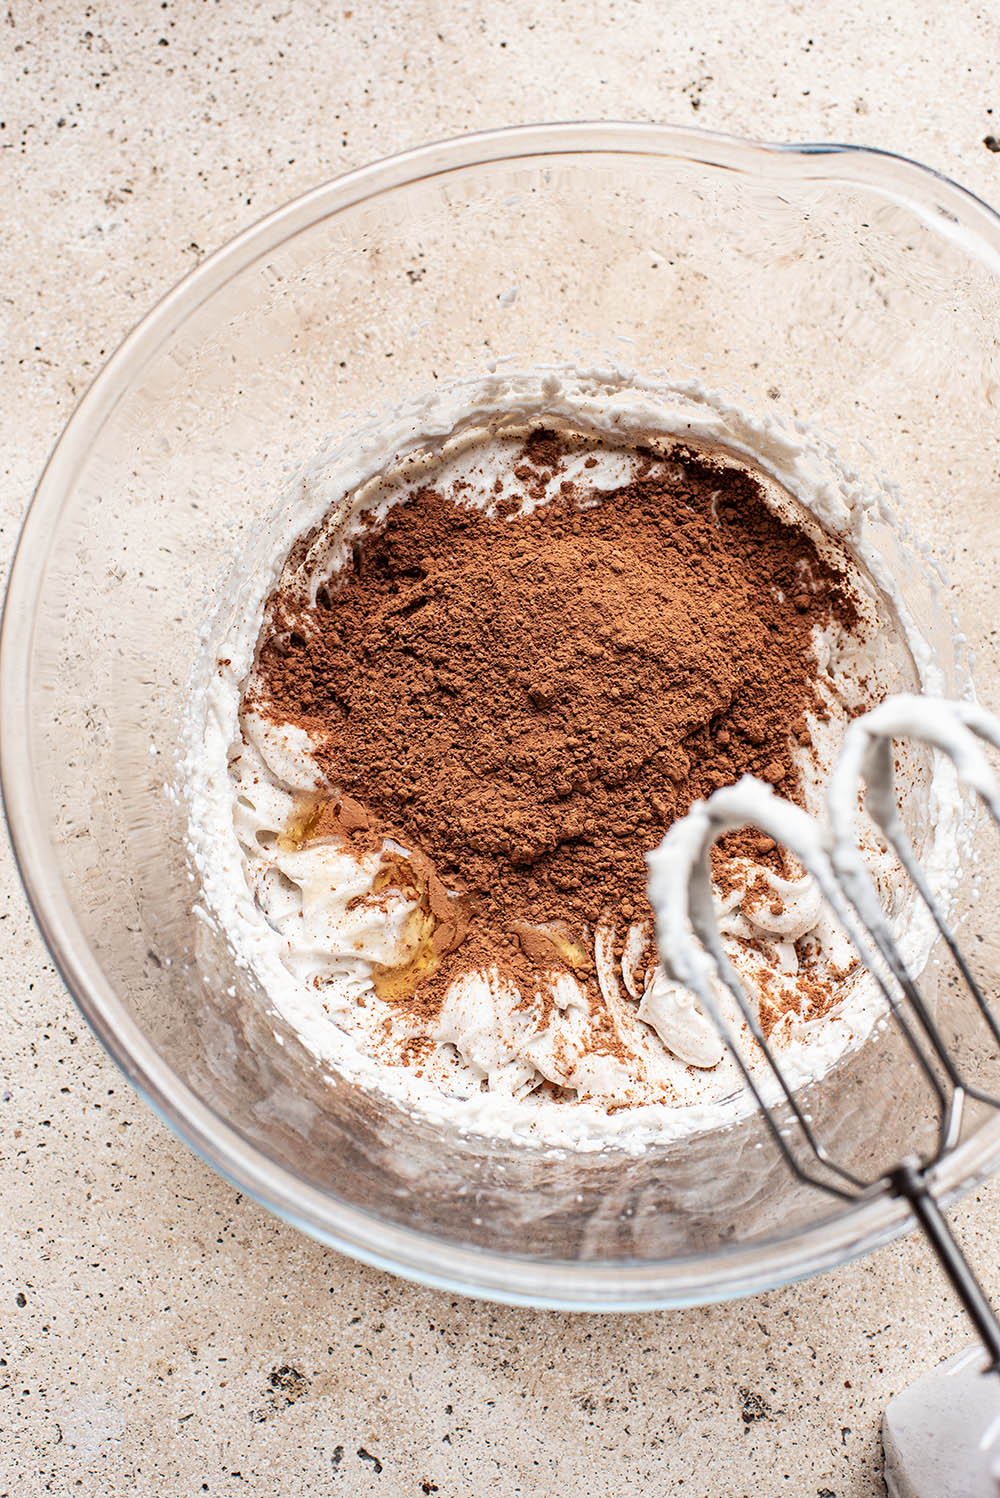 Cocoa powder over coconut whipped cream in a large glass bowl.